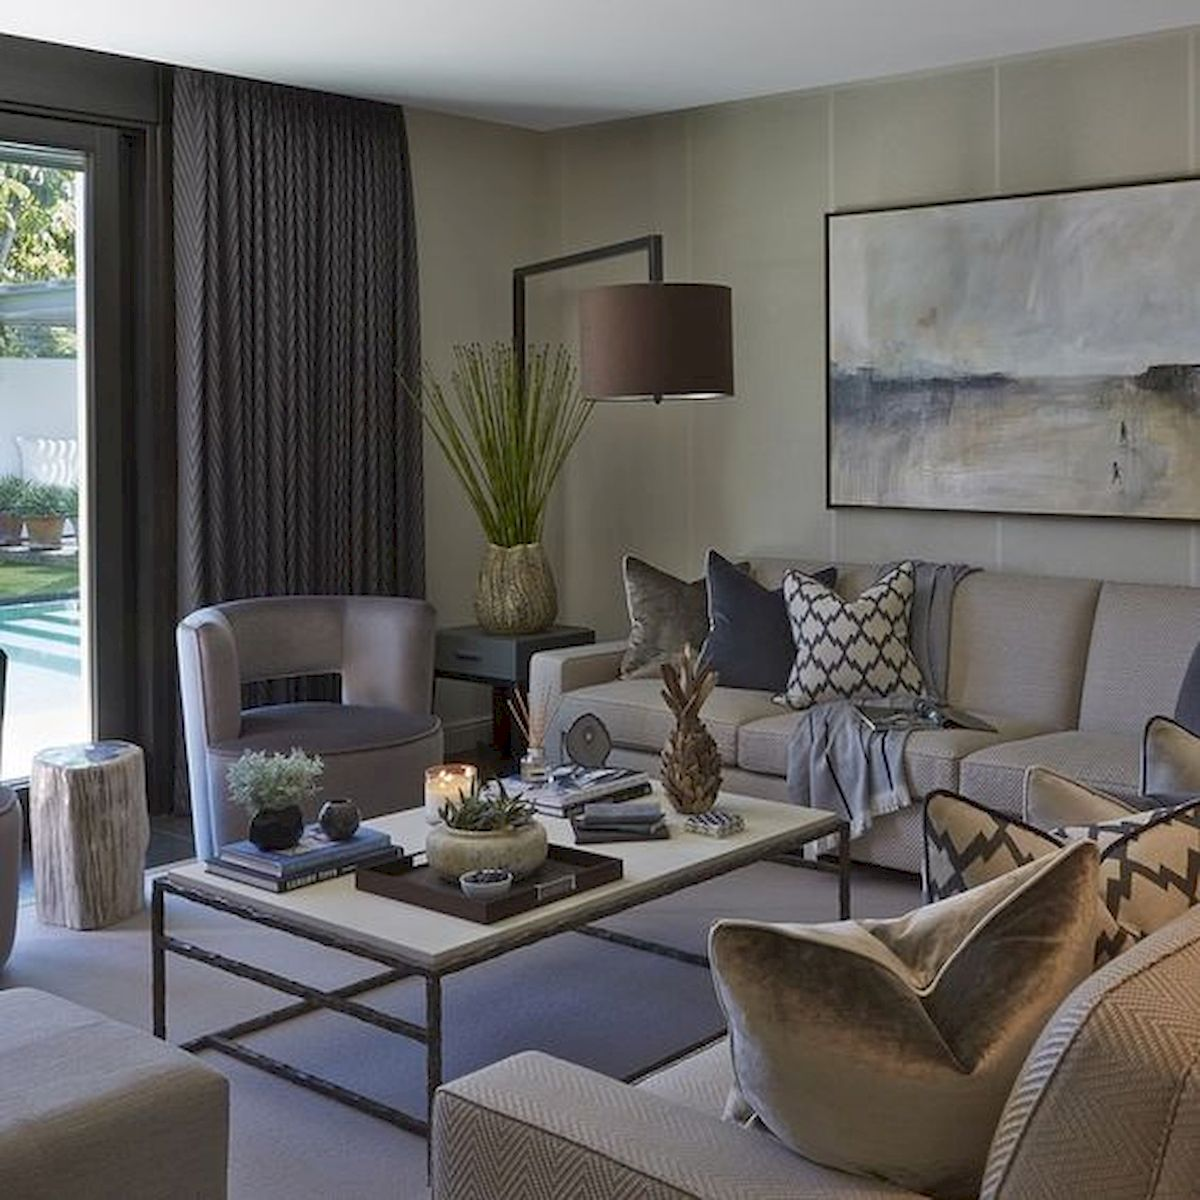 60 Living Room Decor Ideas With Artwork Coffee Tables (12)